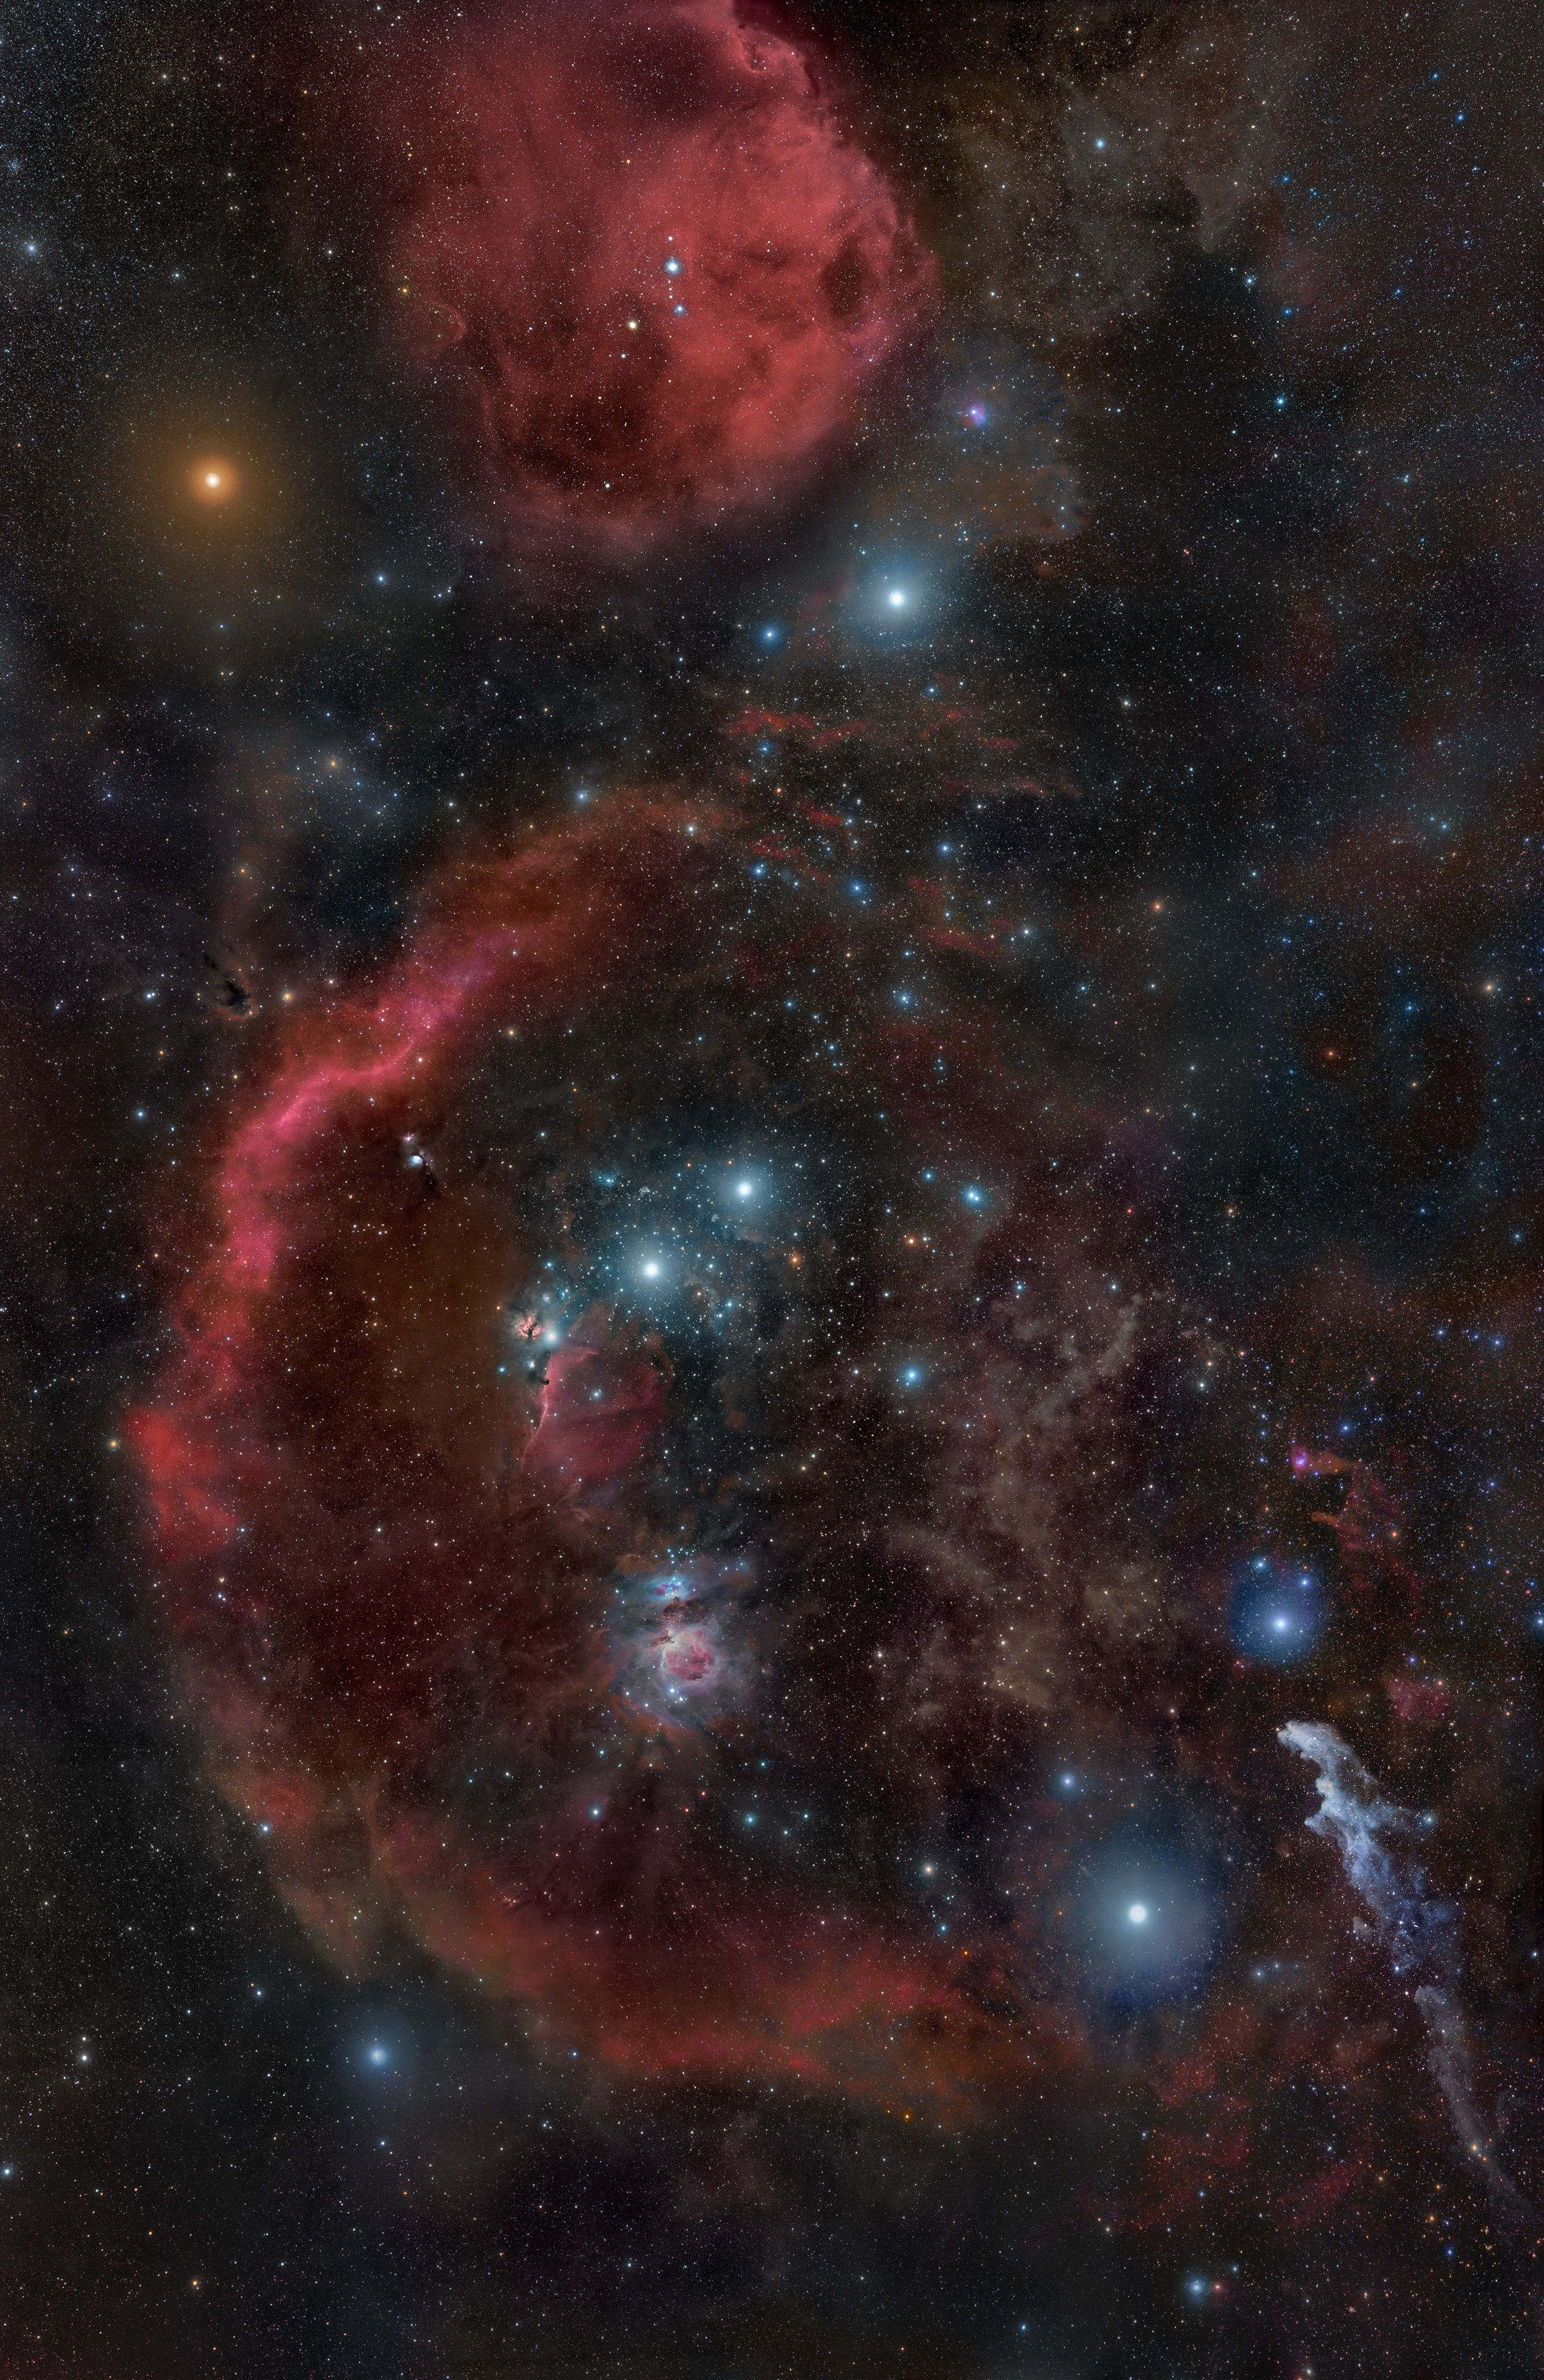 Orion Head To Toe Jpg 2657 4096 Orion Head To Toe Orion S Belt Wikipedia The Free Encyclopedia Nebulosa De Orion Constelacao De Orion Imagens Do Hubble